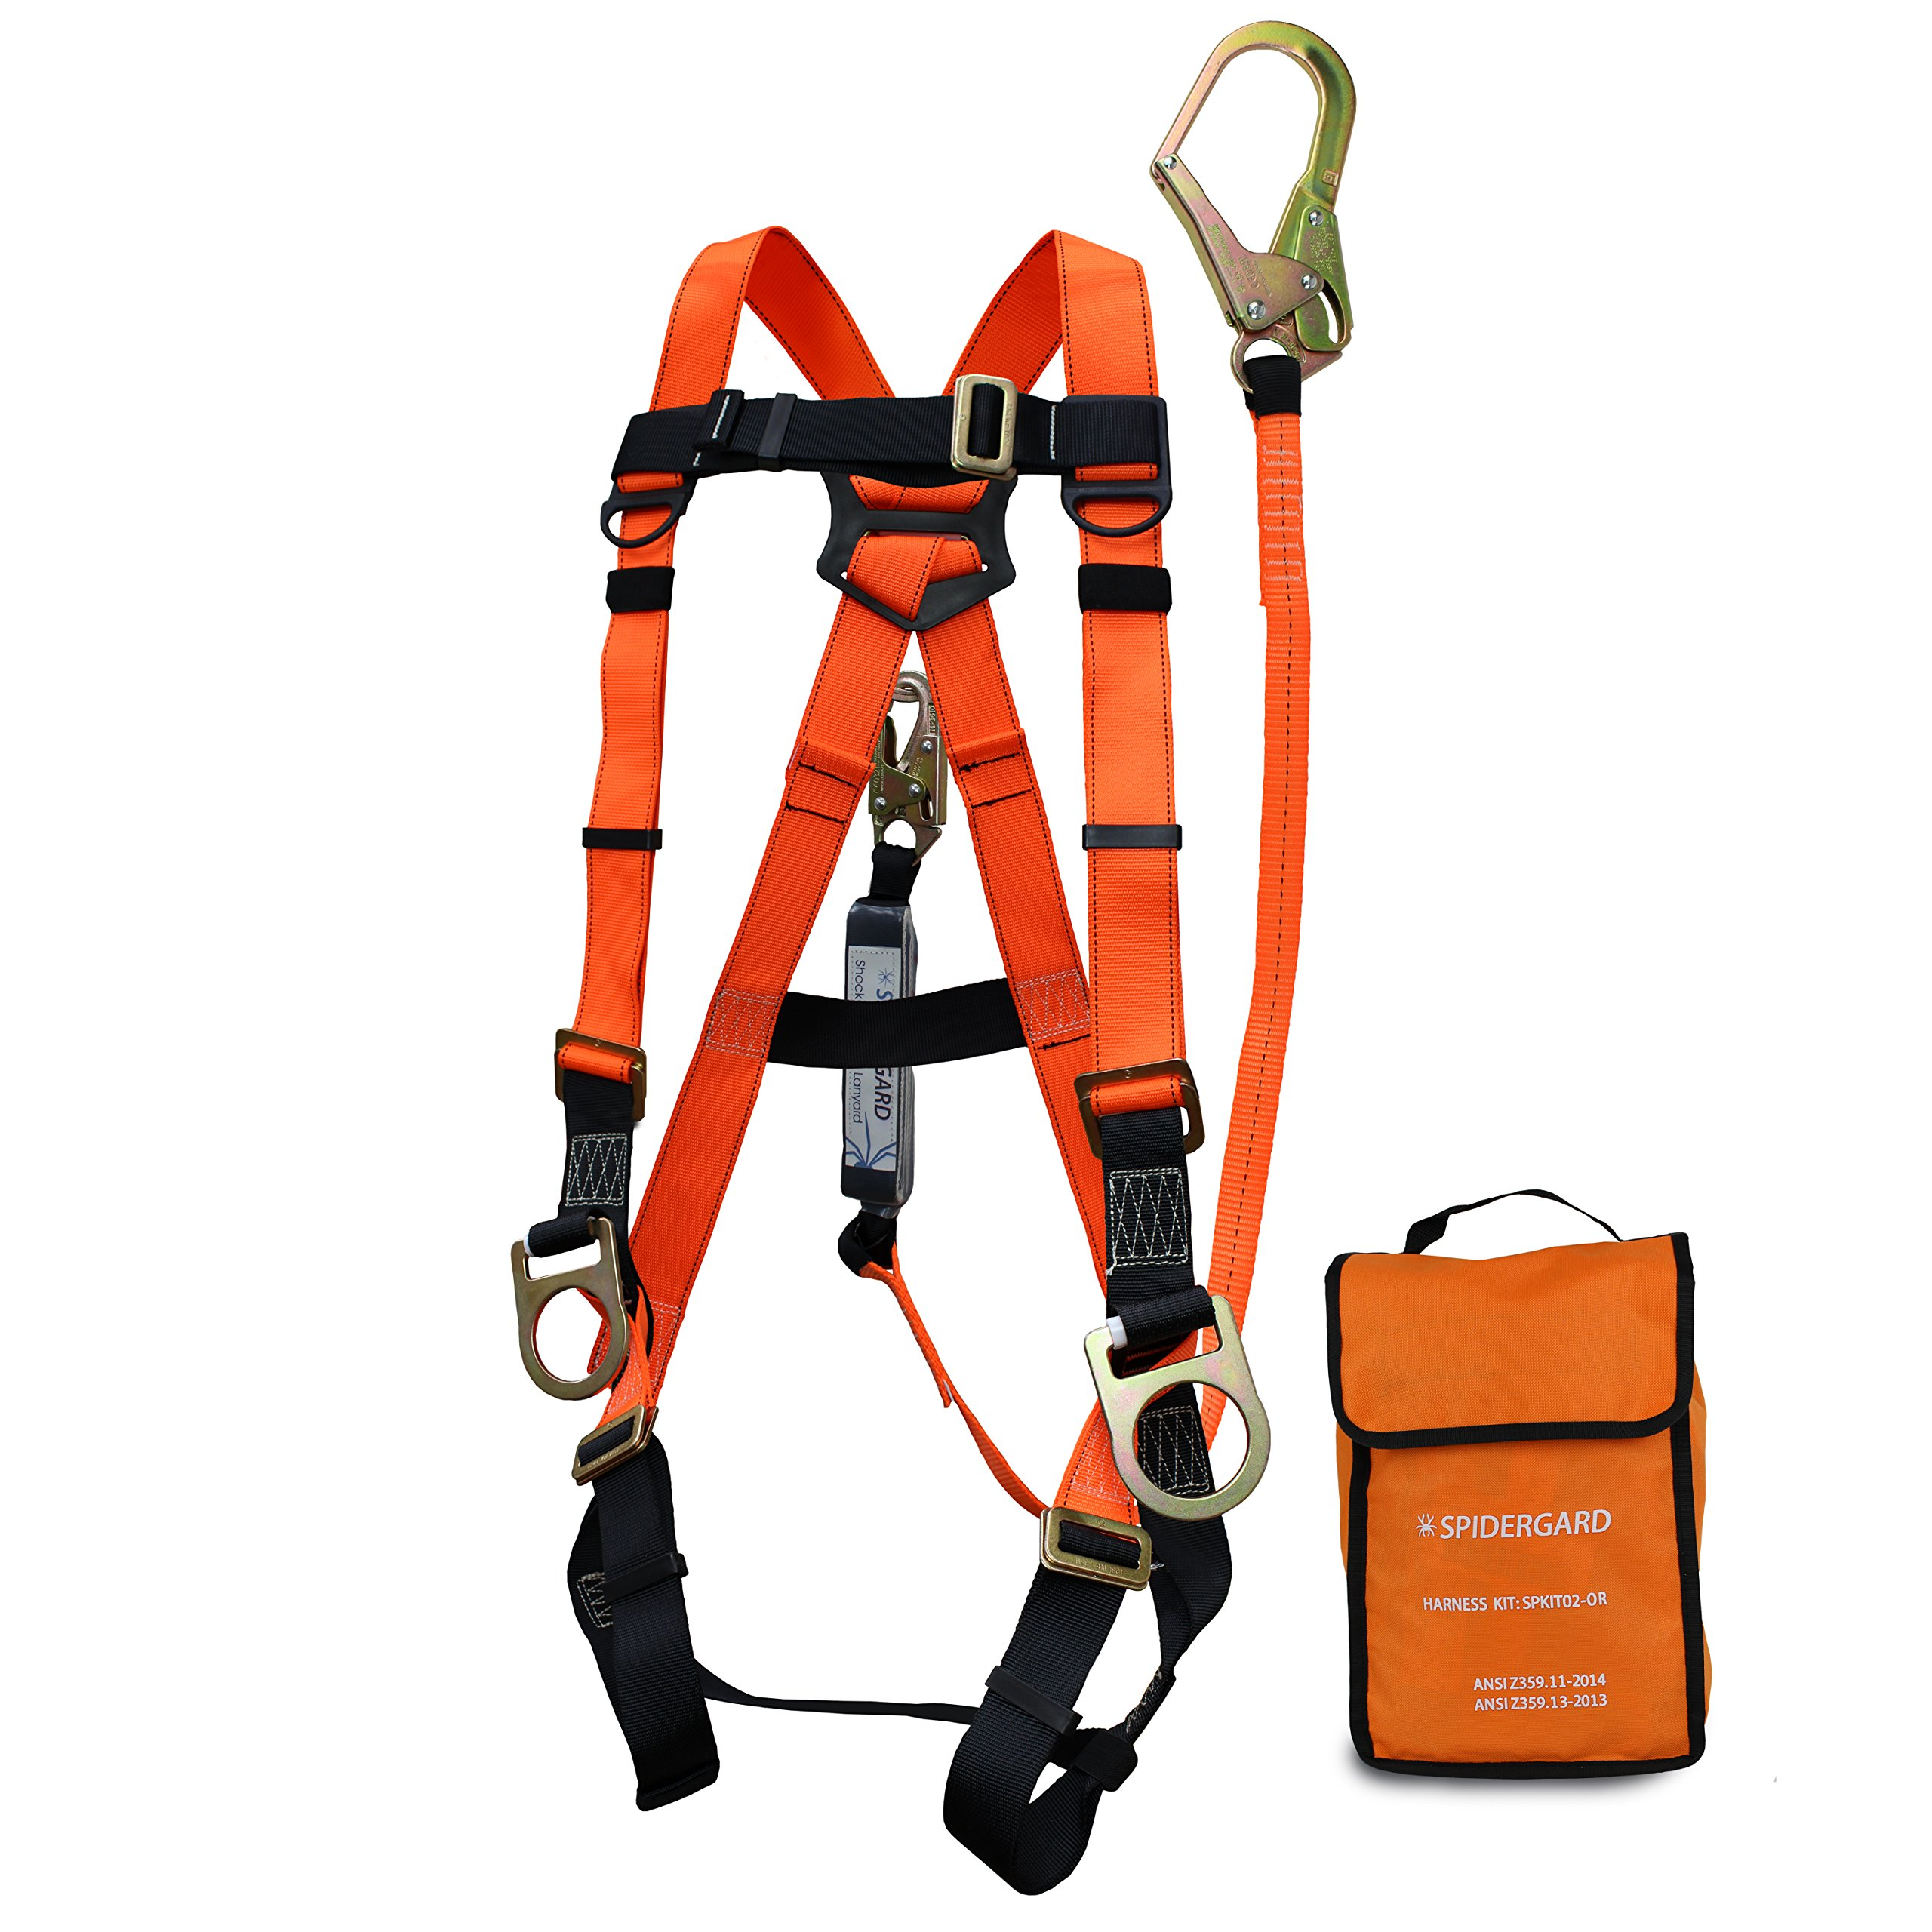 Spidergard SPKIT02 Three D-Ring Full Body Fall Protection Safety Harness Combo with 6ft Shock Absrober Rebar Hook Lanyard (Orange, L-XL)